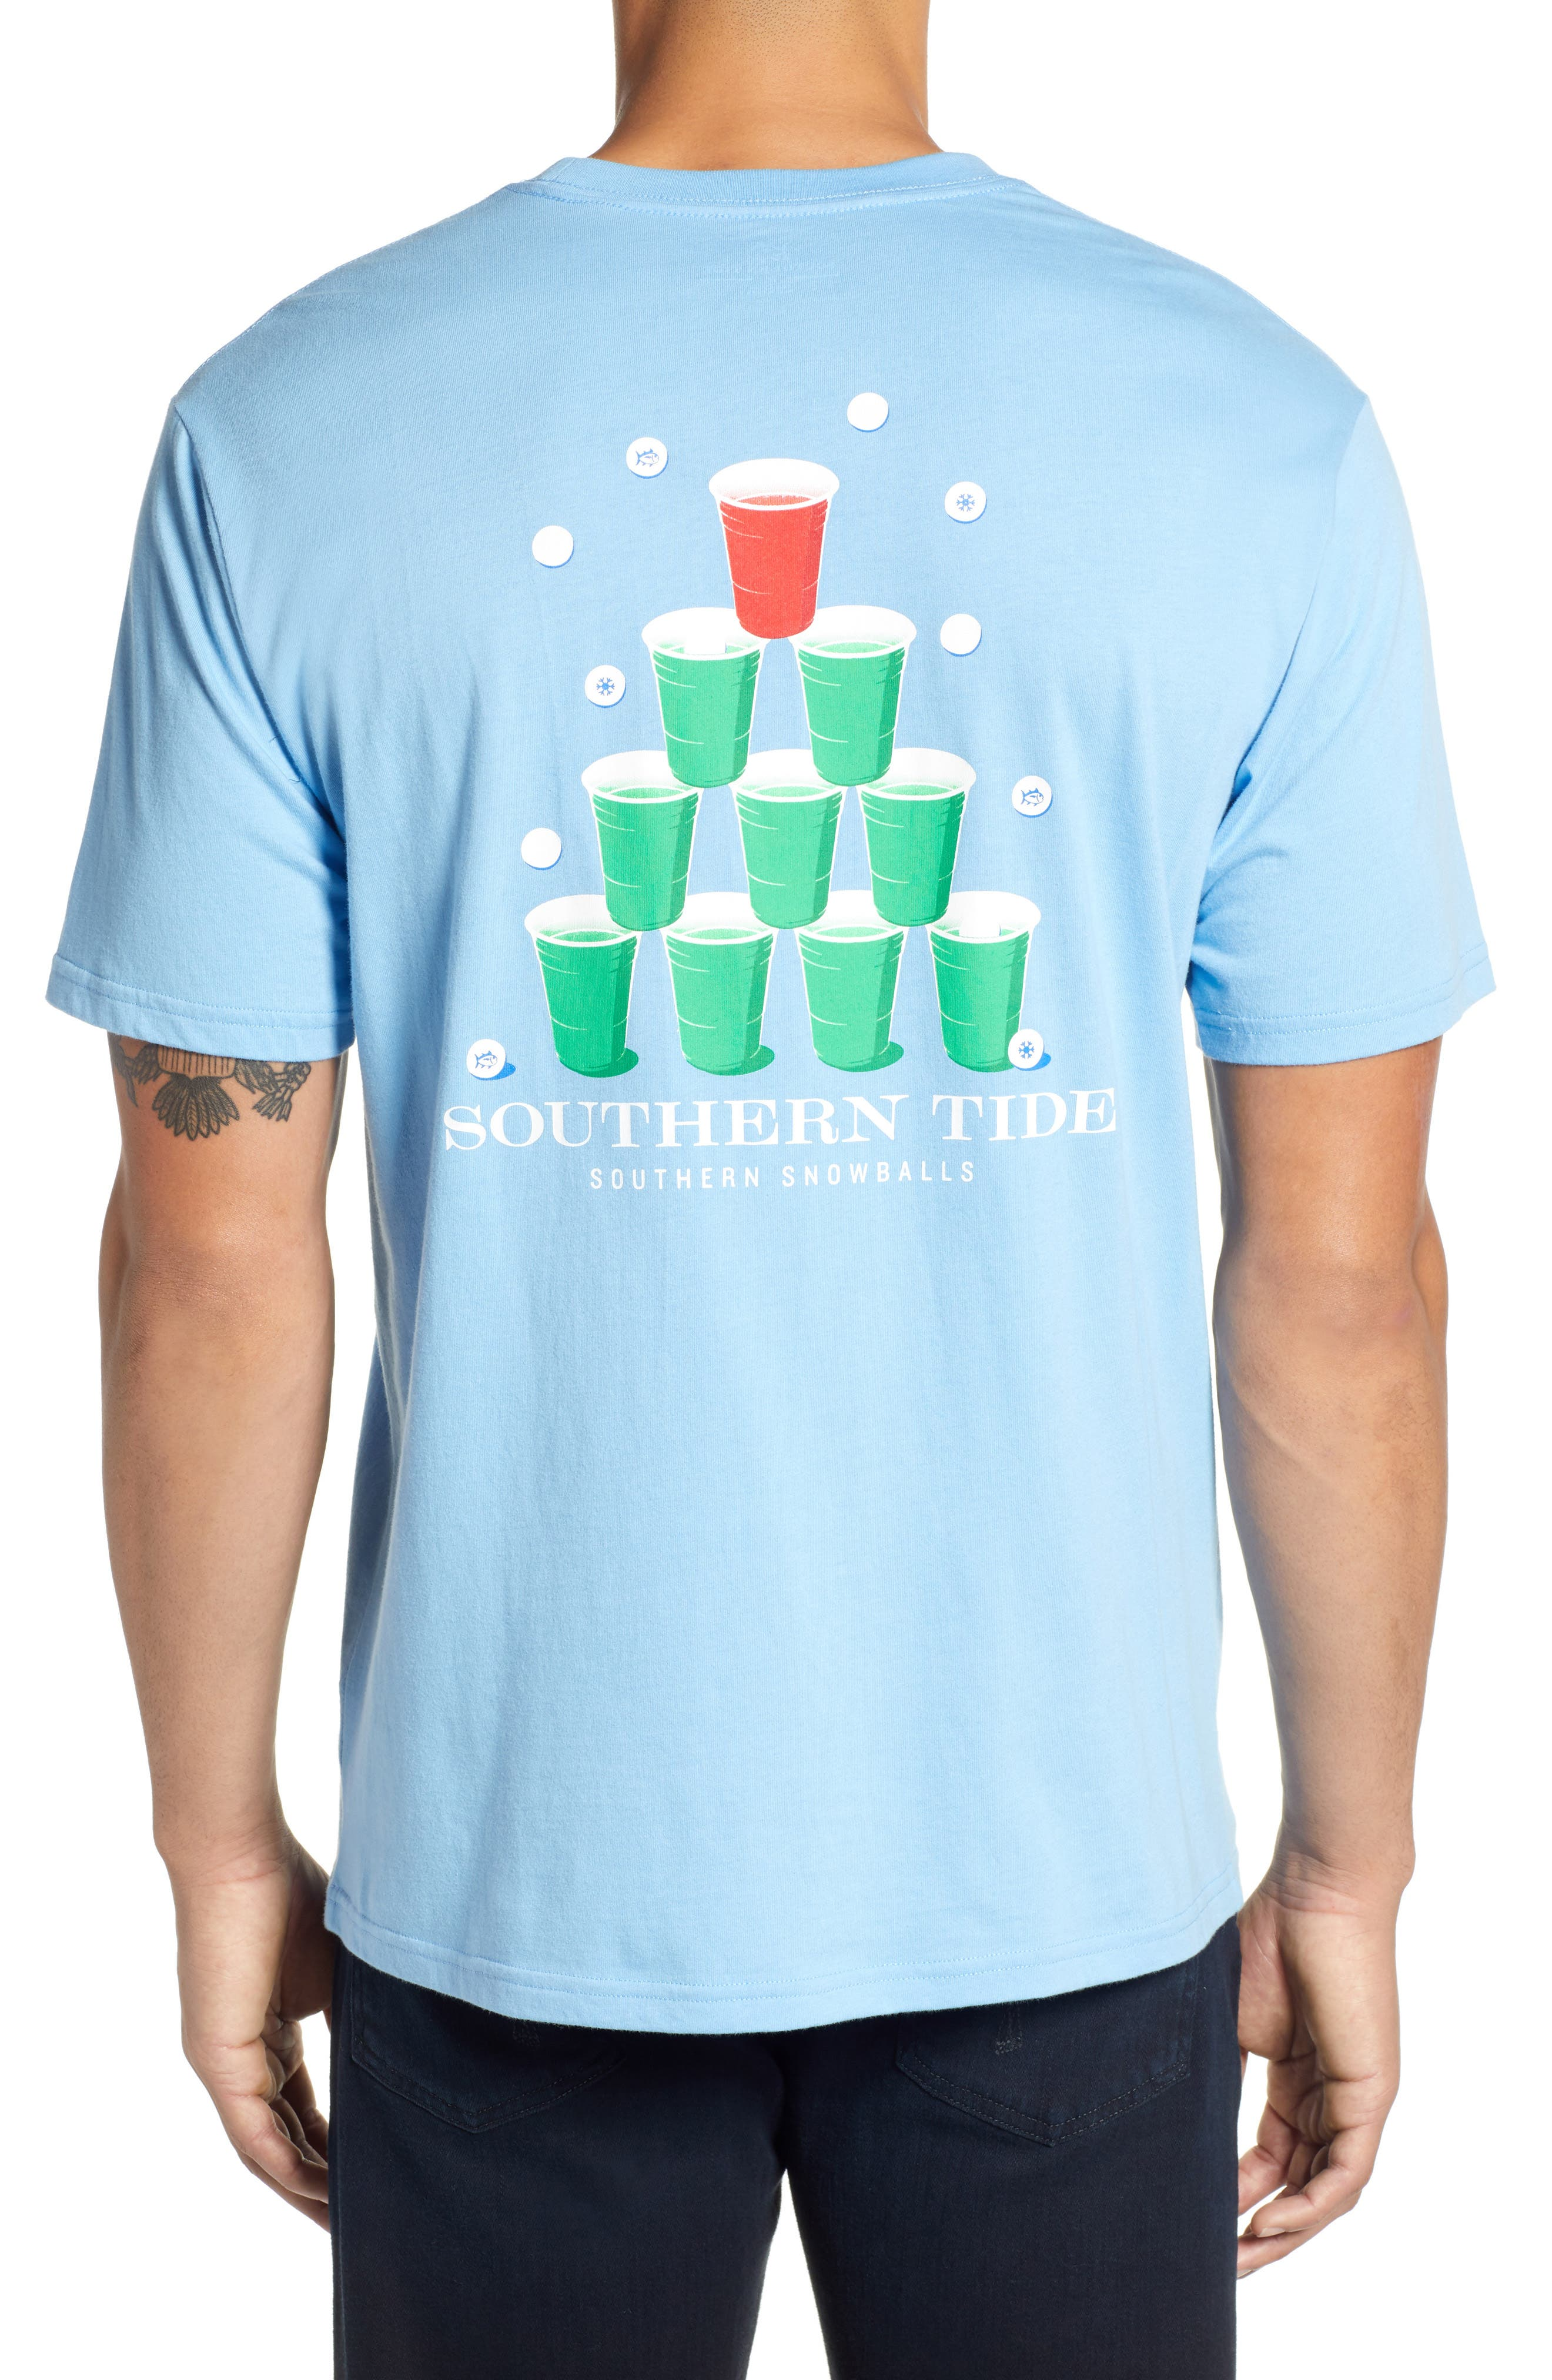 Southern Snowball T-Shirt,                             Alternate thumbnail 2, color,                             392